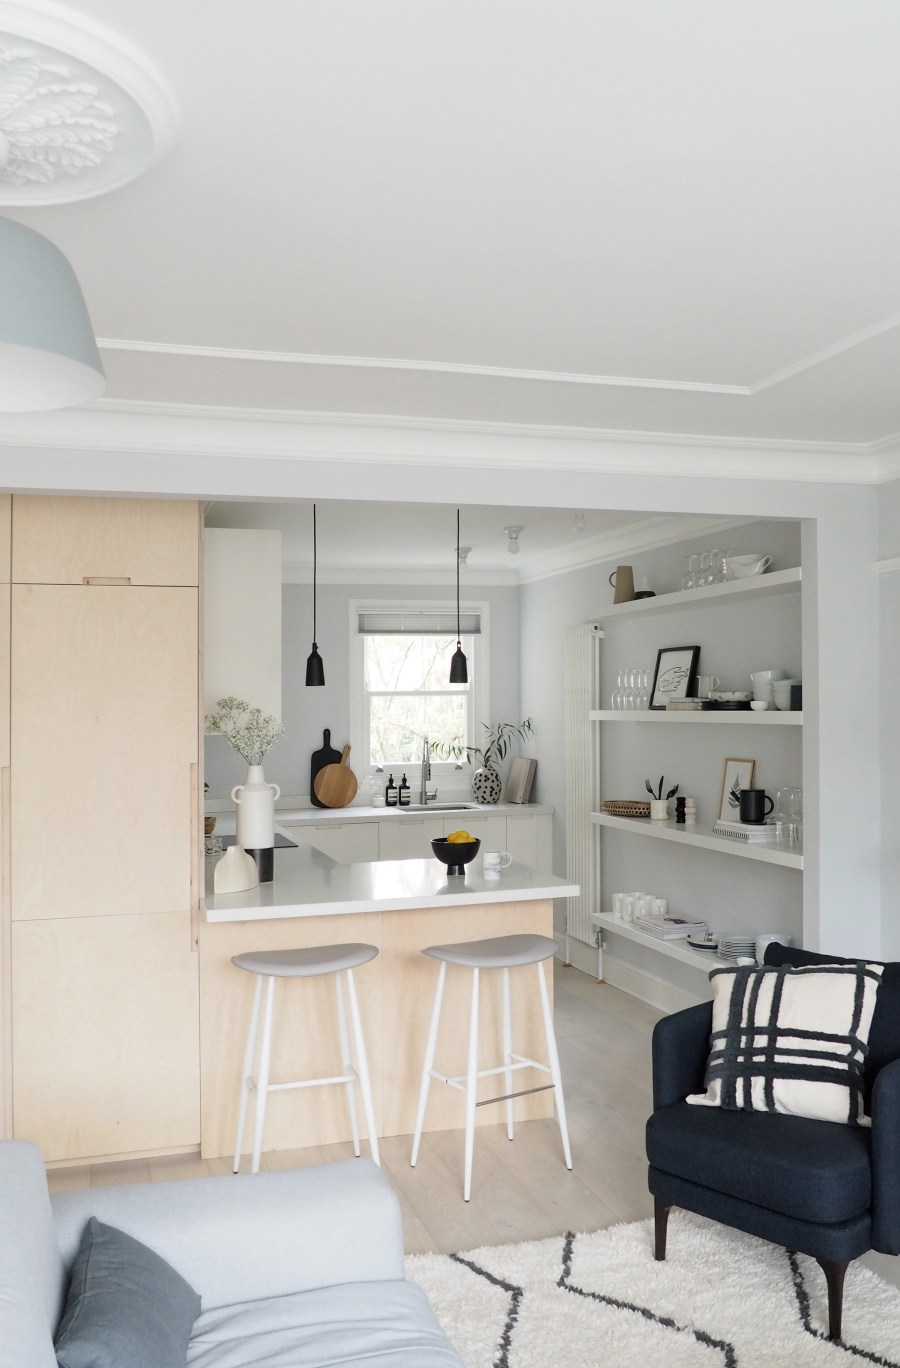 Ikea Living Room Photos new interior project: a light-filled, minimalist kitchen and